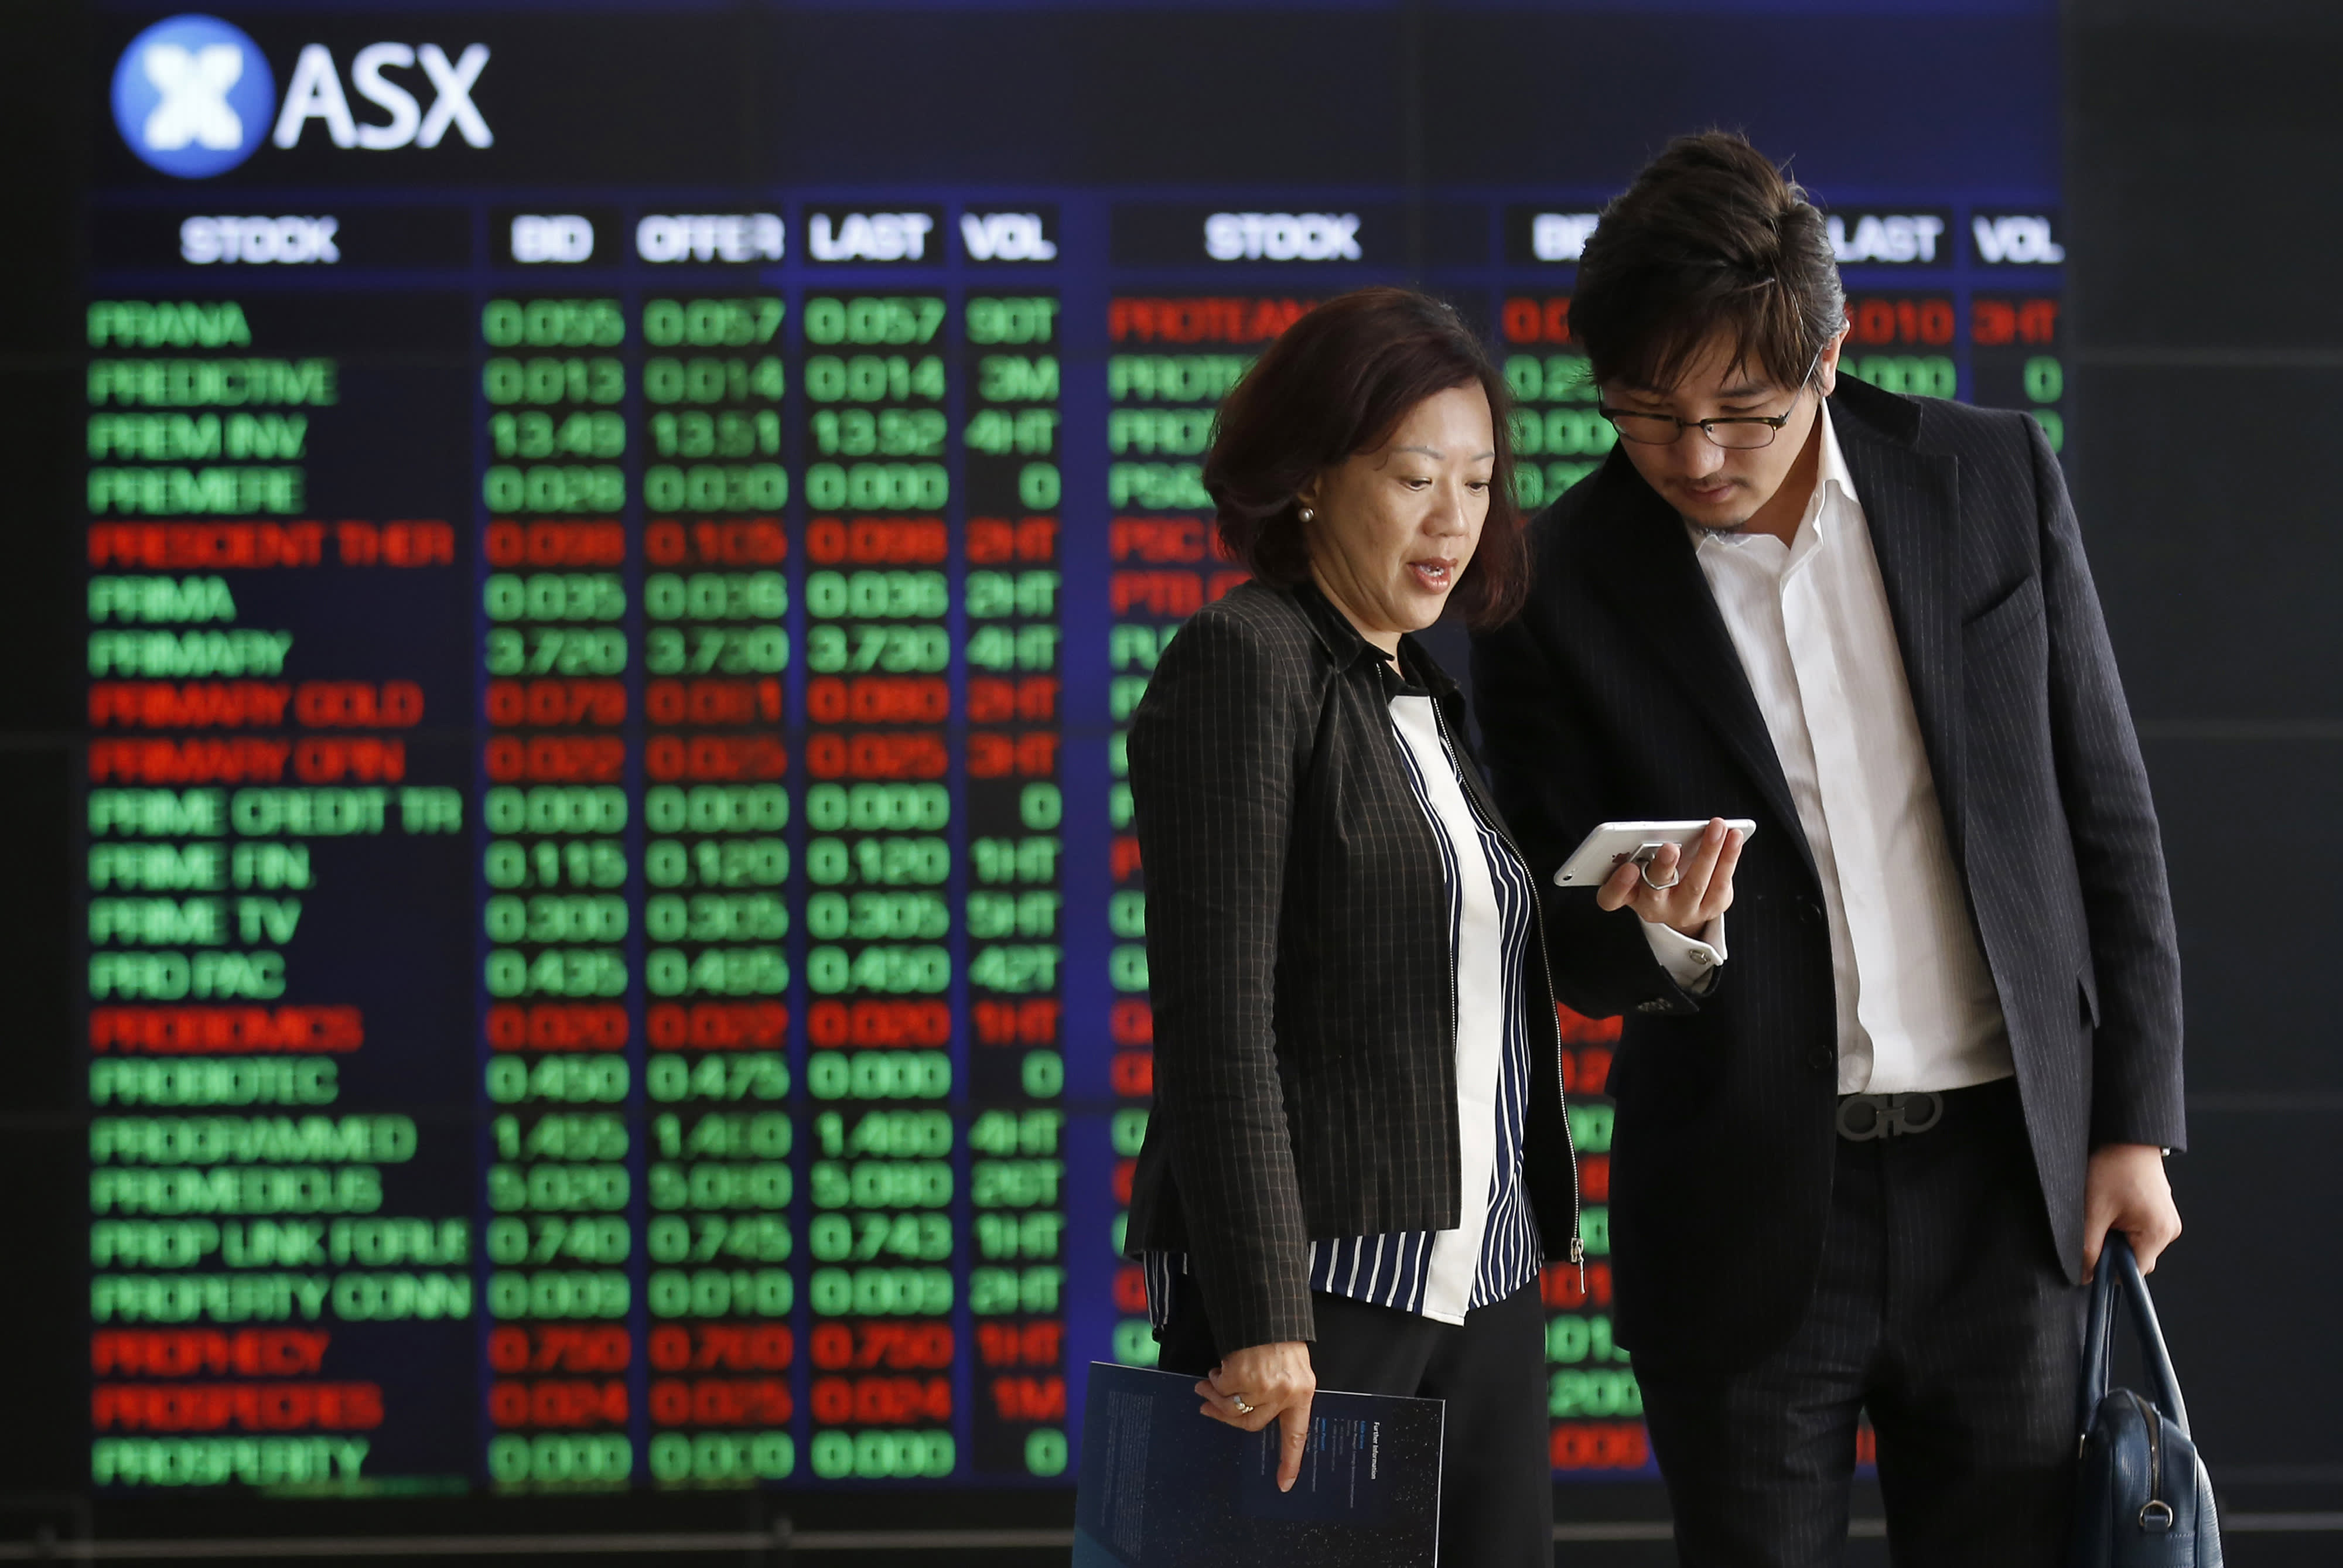 Asia shares set to trade higher with all eyes on upcoming China GDP data